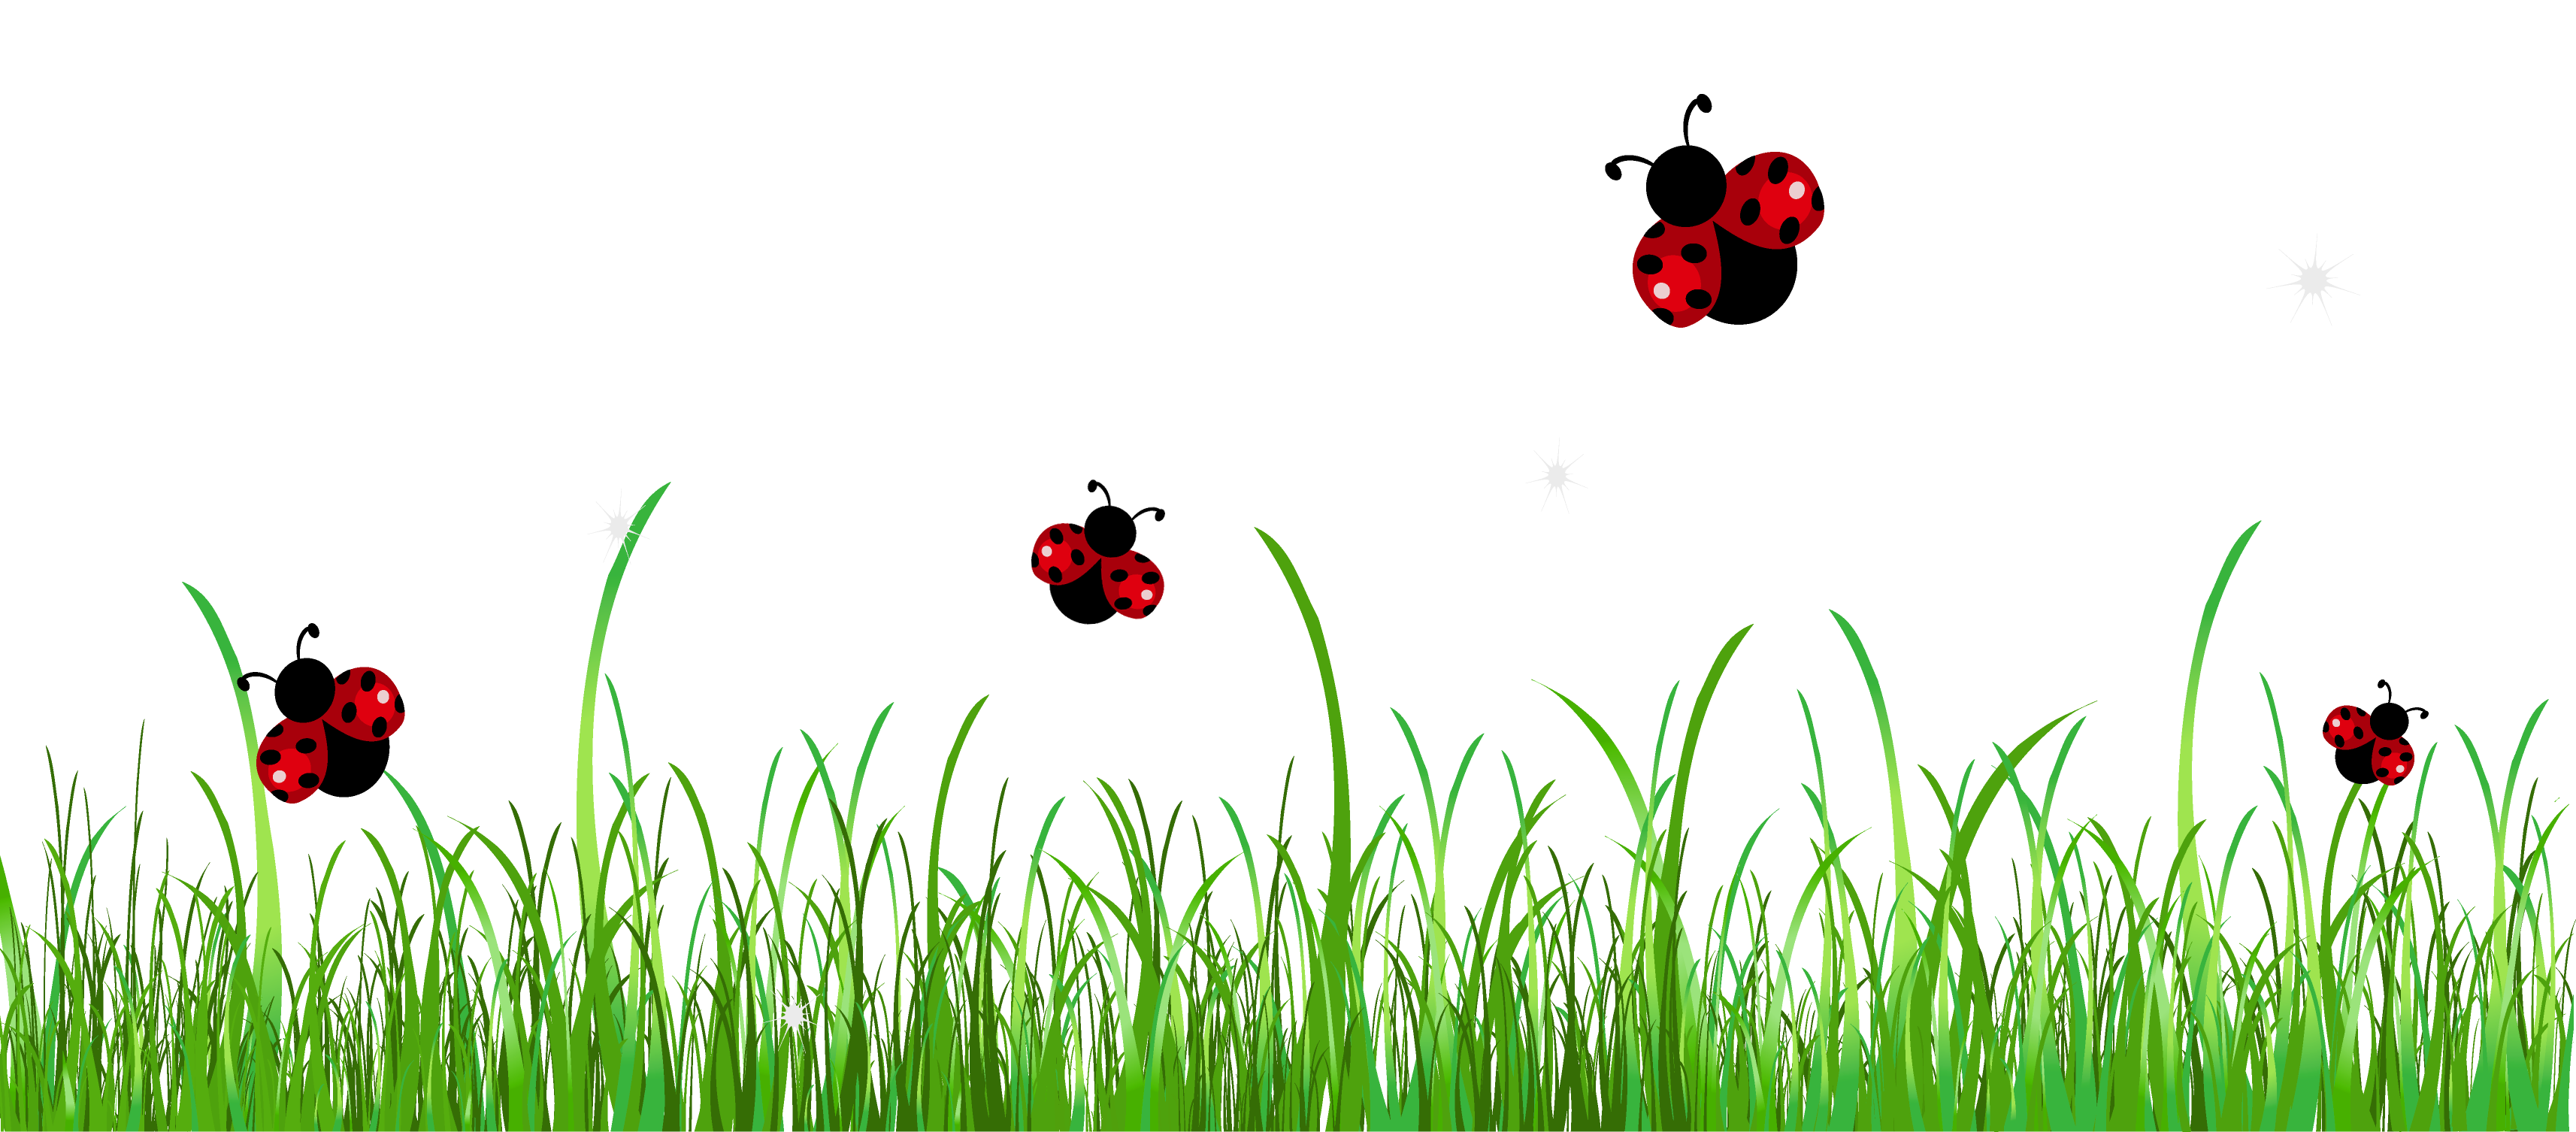 Clipart grass zoo. Ladybug hd images all